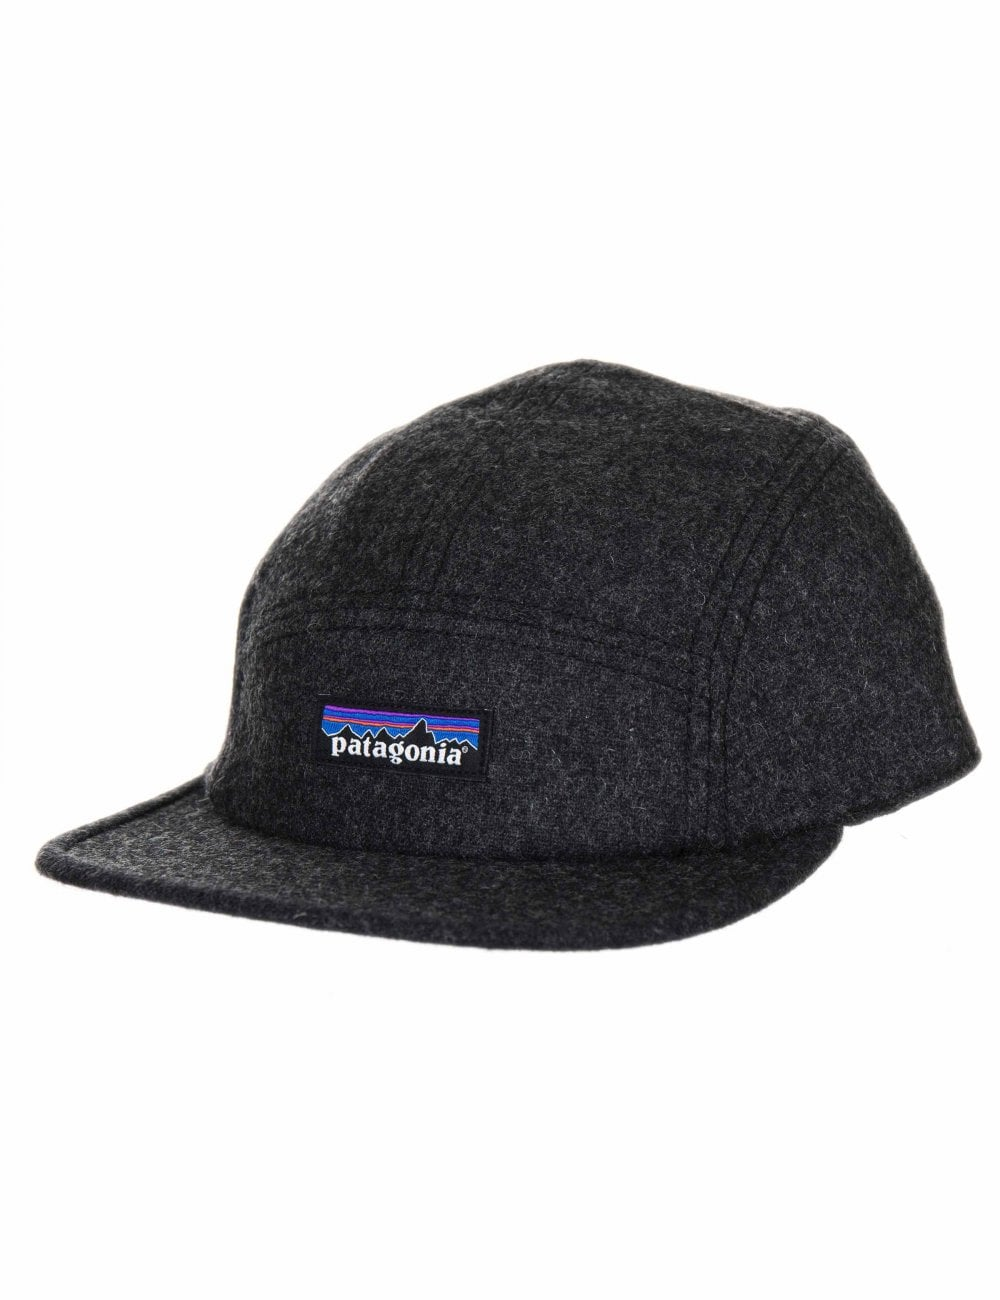 85257794459 Patagonia Recycled Wool 5 Panel Cap - Forge Grey - Accessories from ...